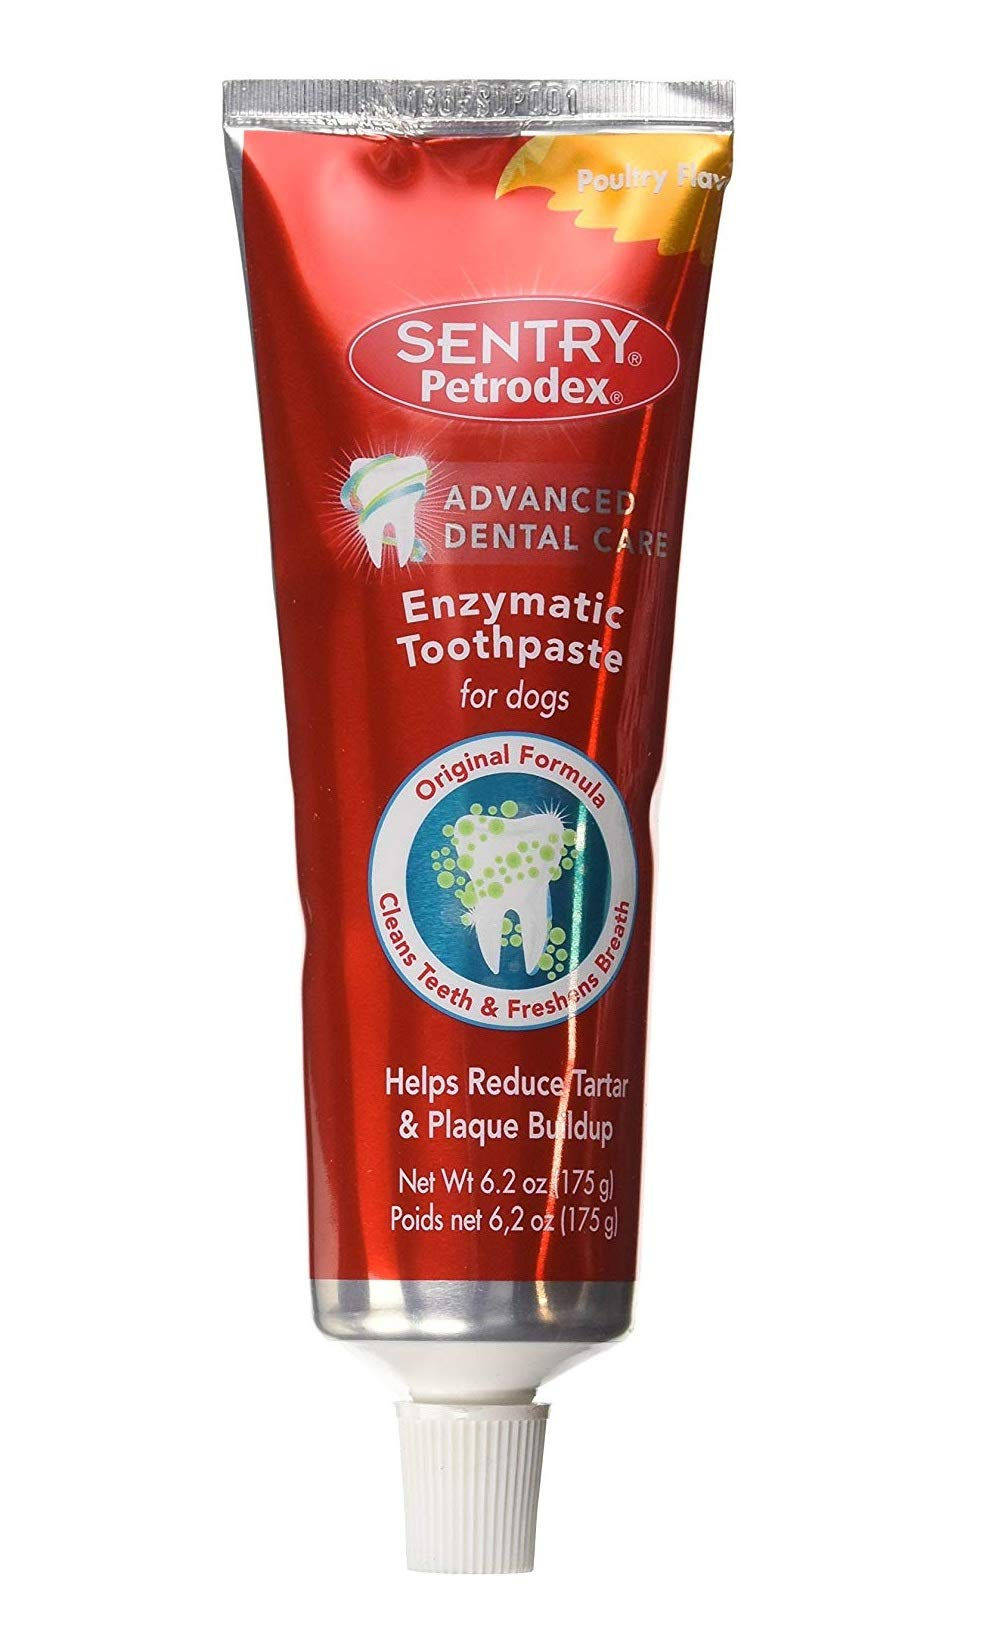 Petrodex Enzymatic Toothpaste DogPowlty Flaver Family-Value 3-Pack (6.2oz) fZJ by Petrodex